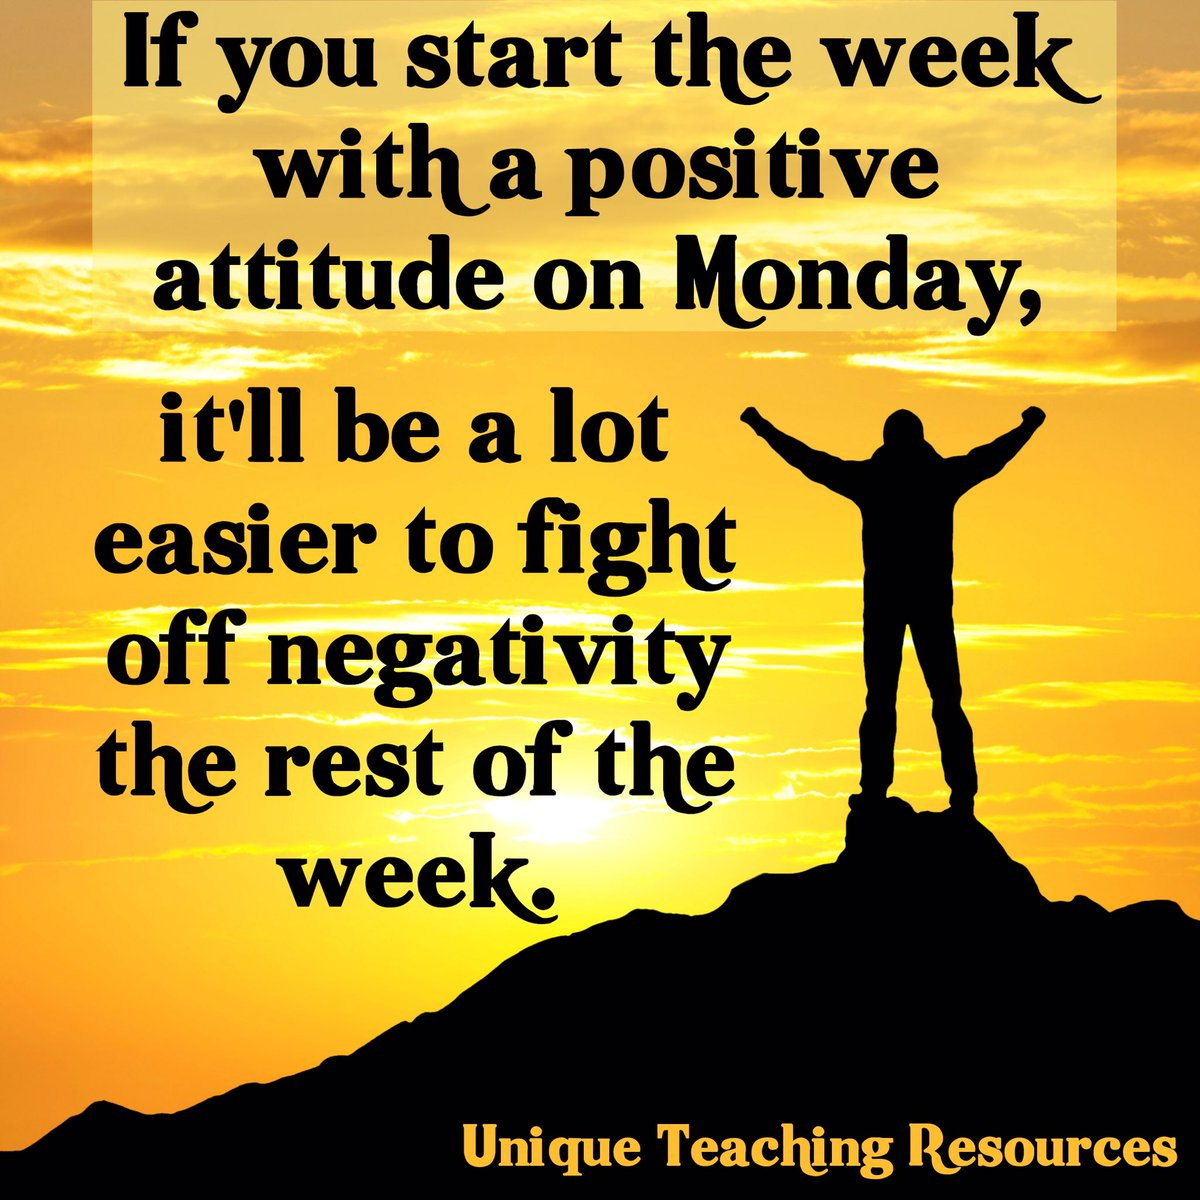 Hello Monday &amp; good morning friends! Positive thoughts for the new week, new discoveries, new adventures in teaching &amp; learning!  #bfc530 <br>http://pic.twitter.com/NkgkM9GuUr